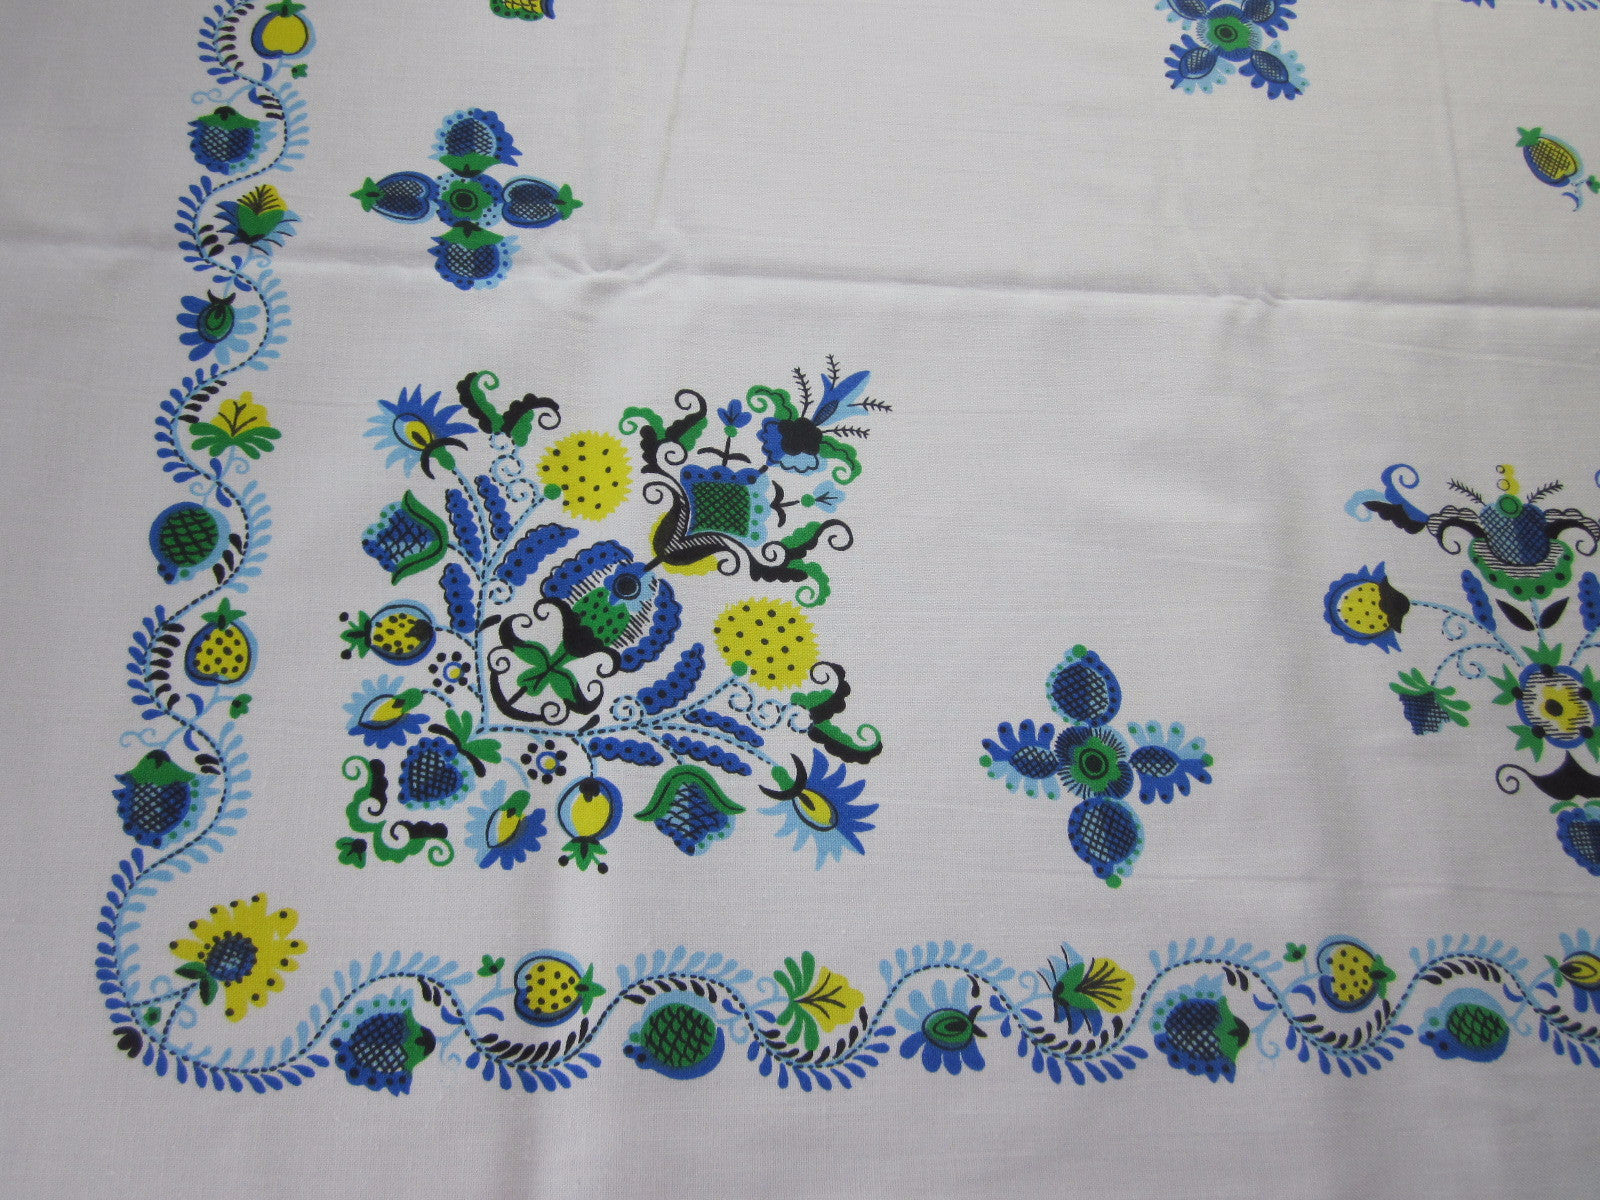 Blue Yellow Green PA Dutch Floral MWT Vintage Printed Tablecloth (68 X 51)